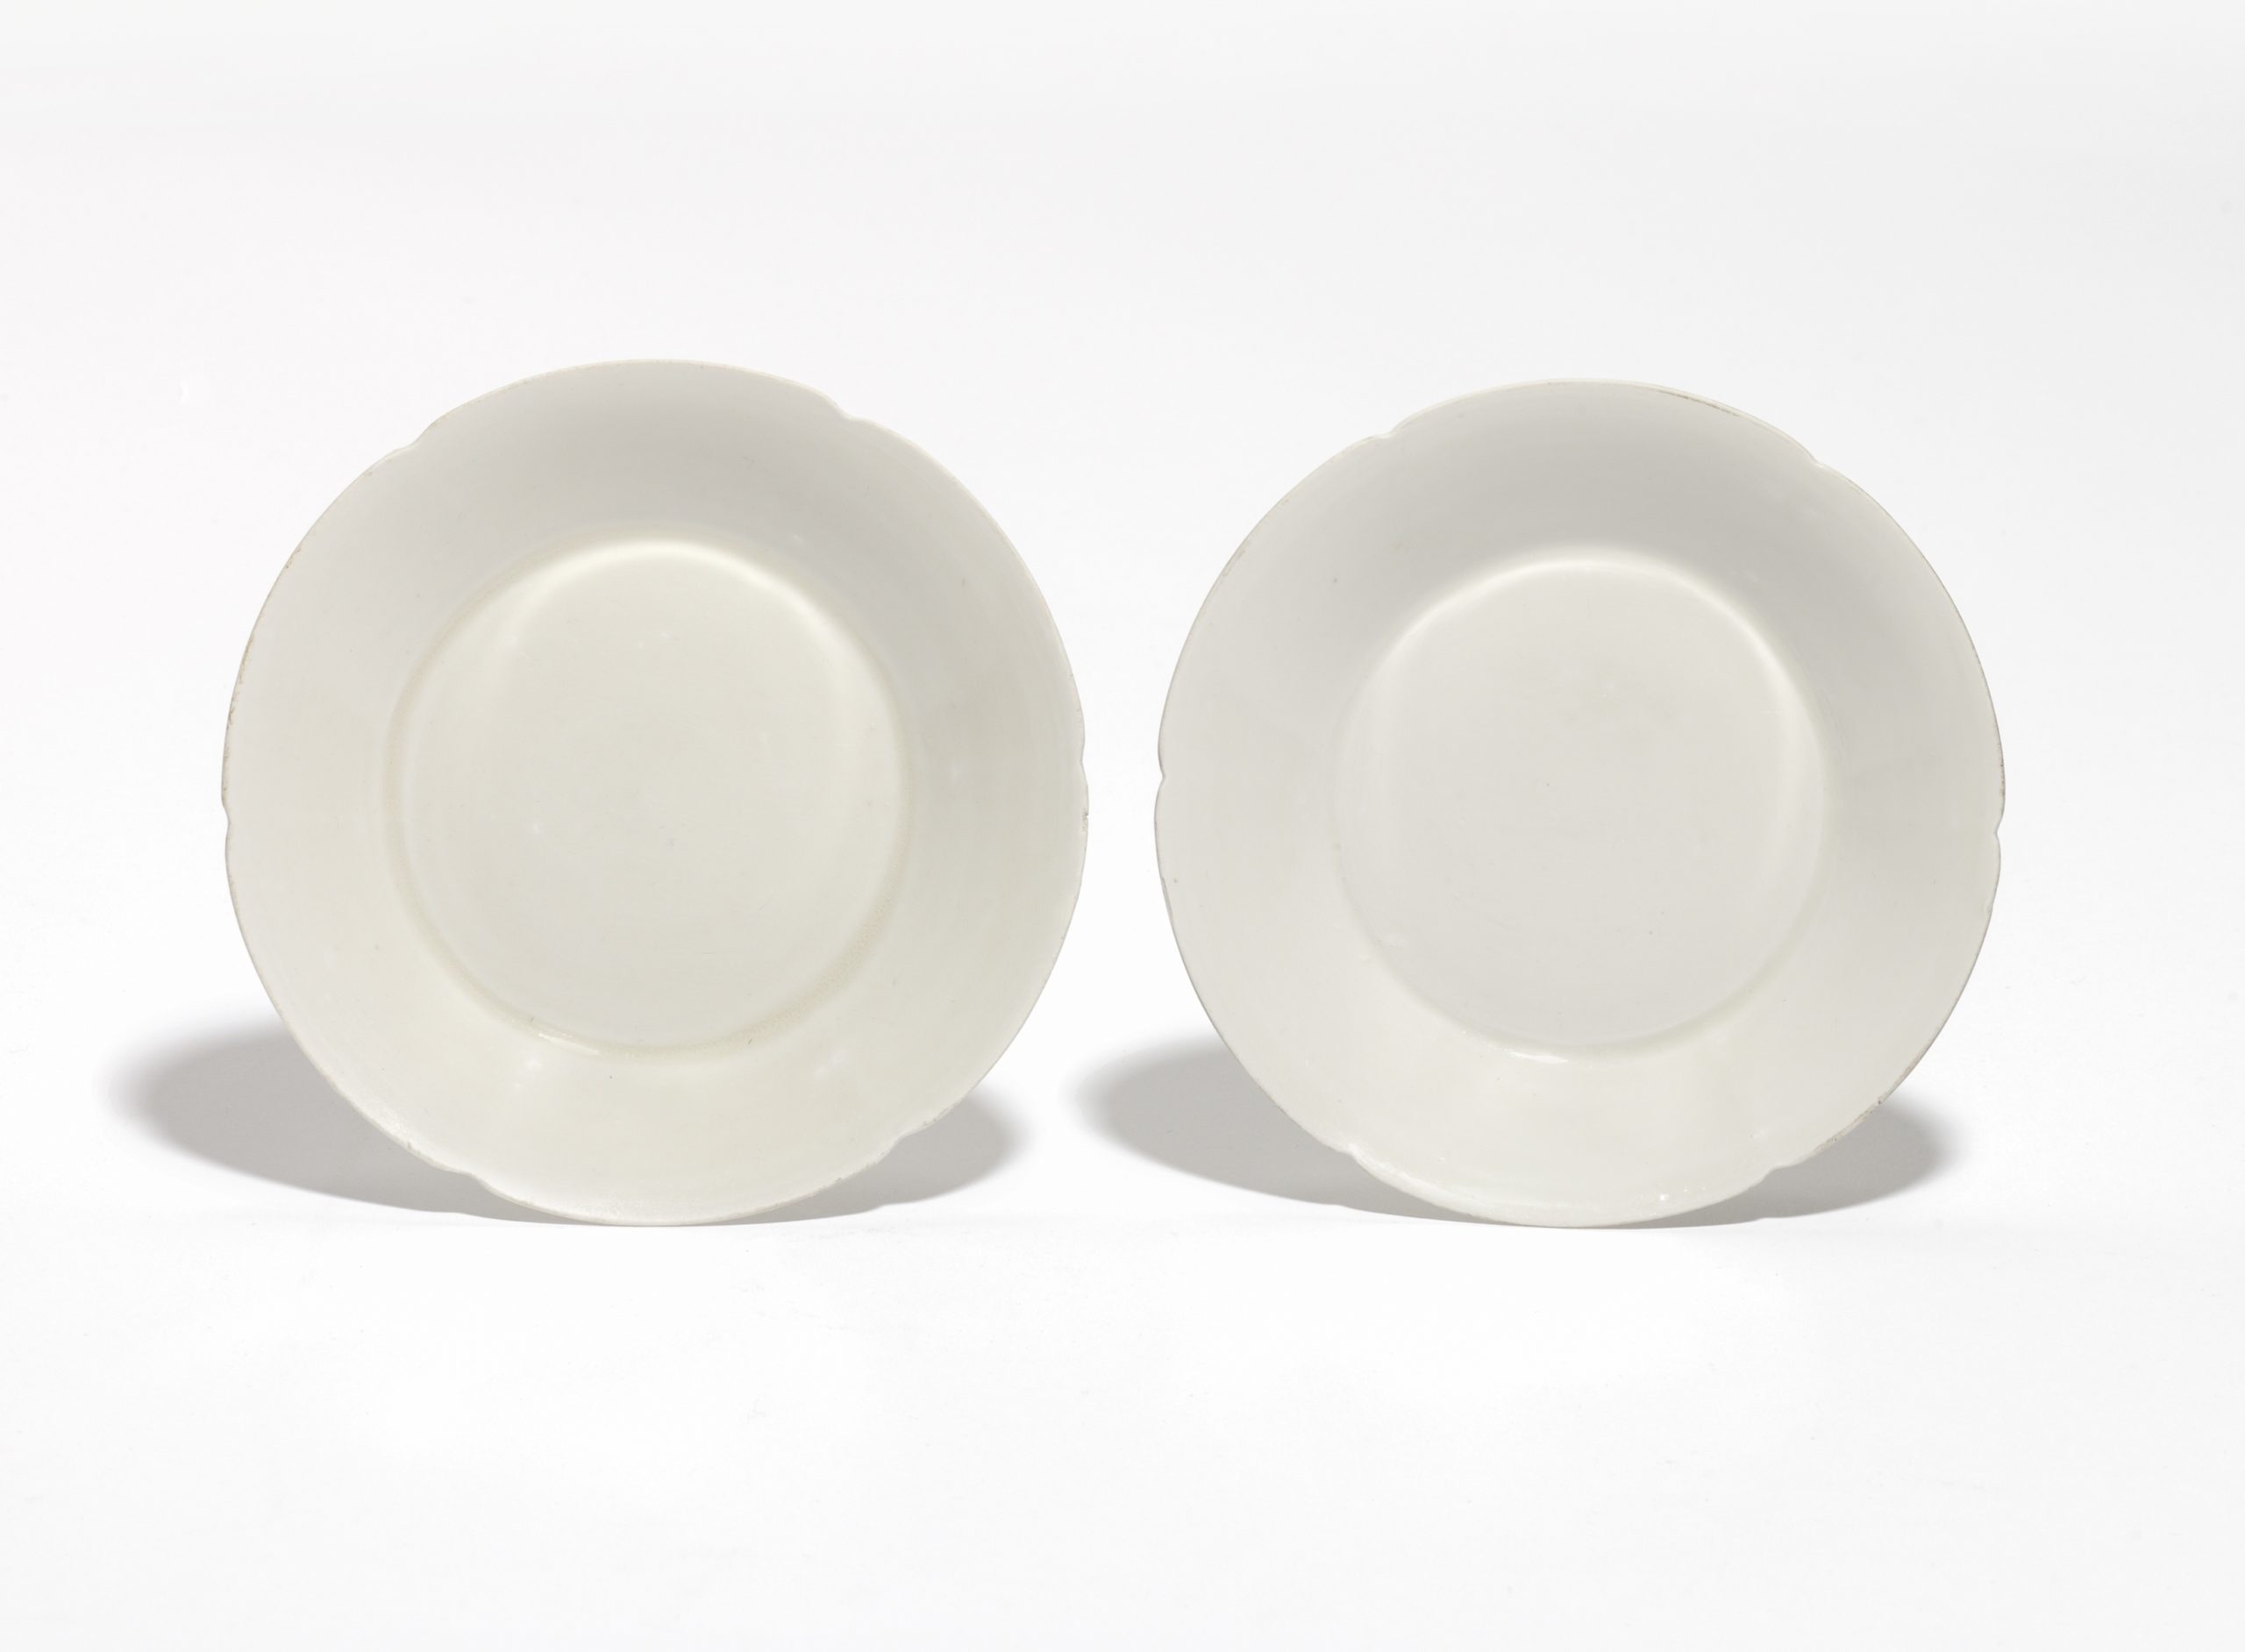 Dimensions: 13cm diameter  Provenance: - From the Collection of Enid & Brodie Lodge